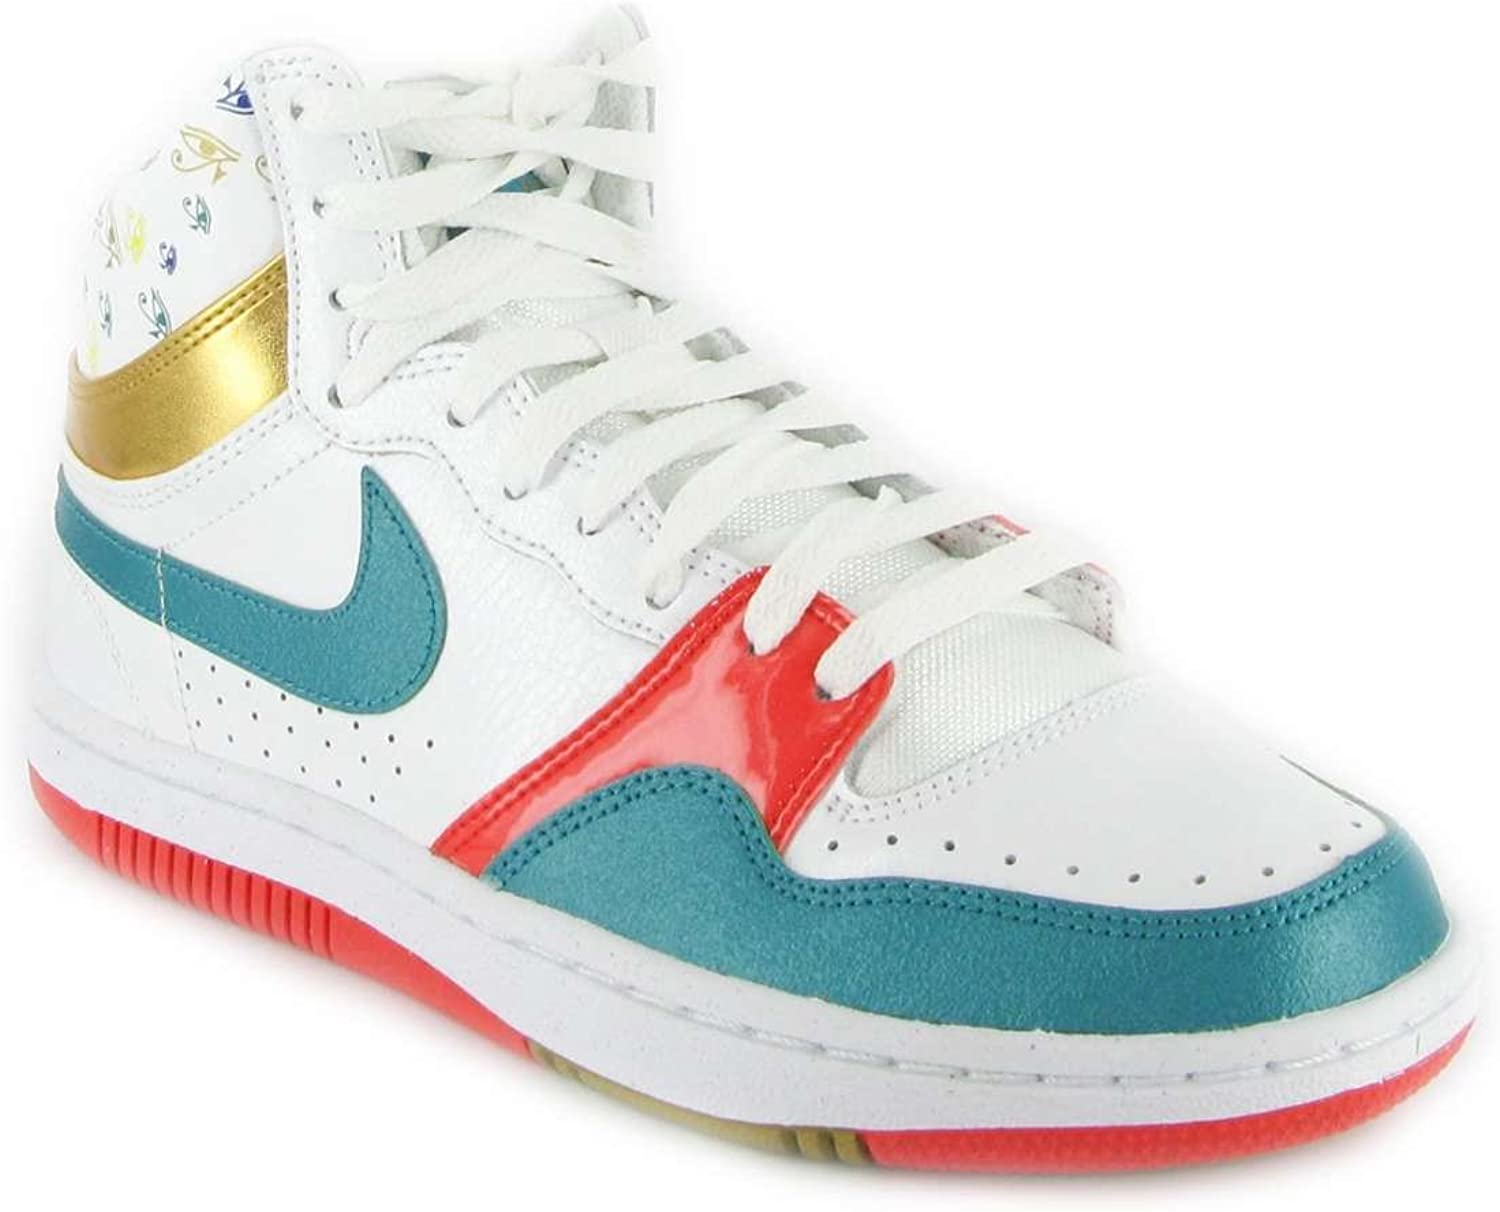 Nike WMNS Court Court Court Force HIGH, Damen Turnschuhe Weiß weiß 16  8a834c